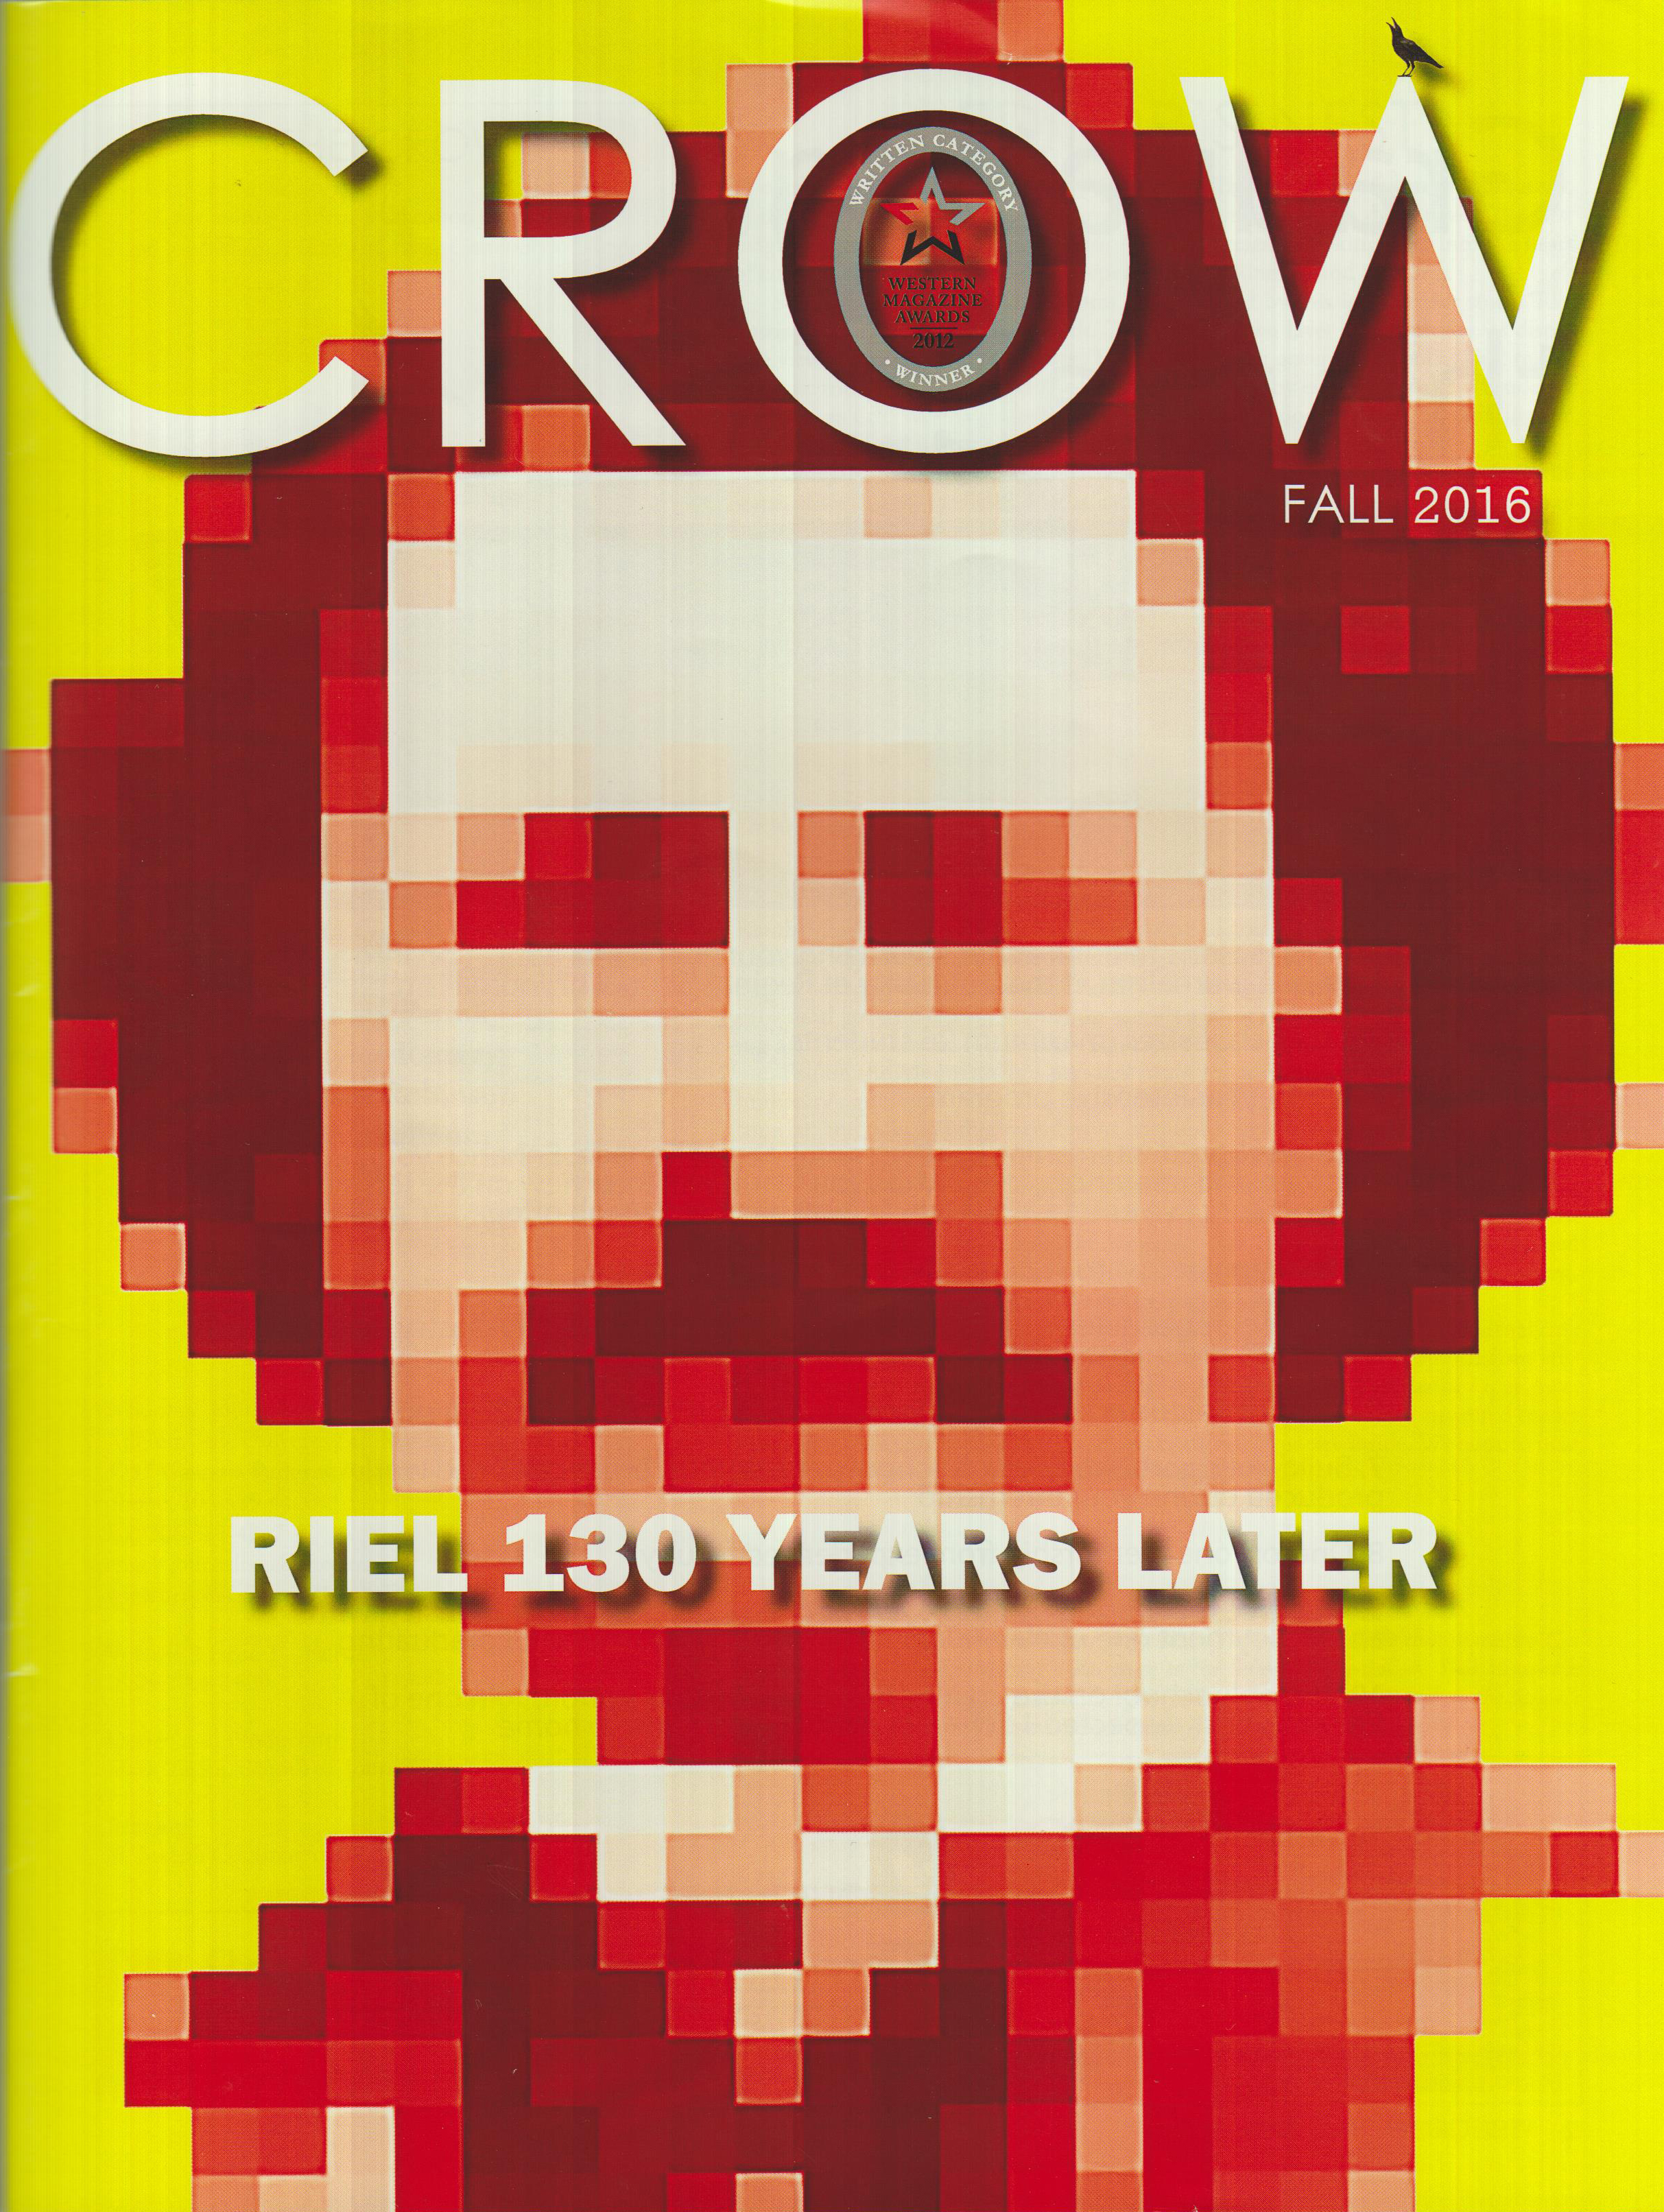 Crow2016CoverforWeb